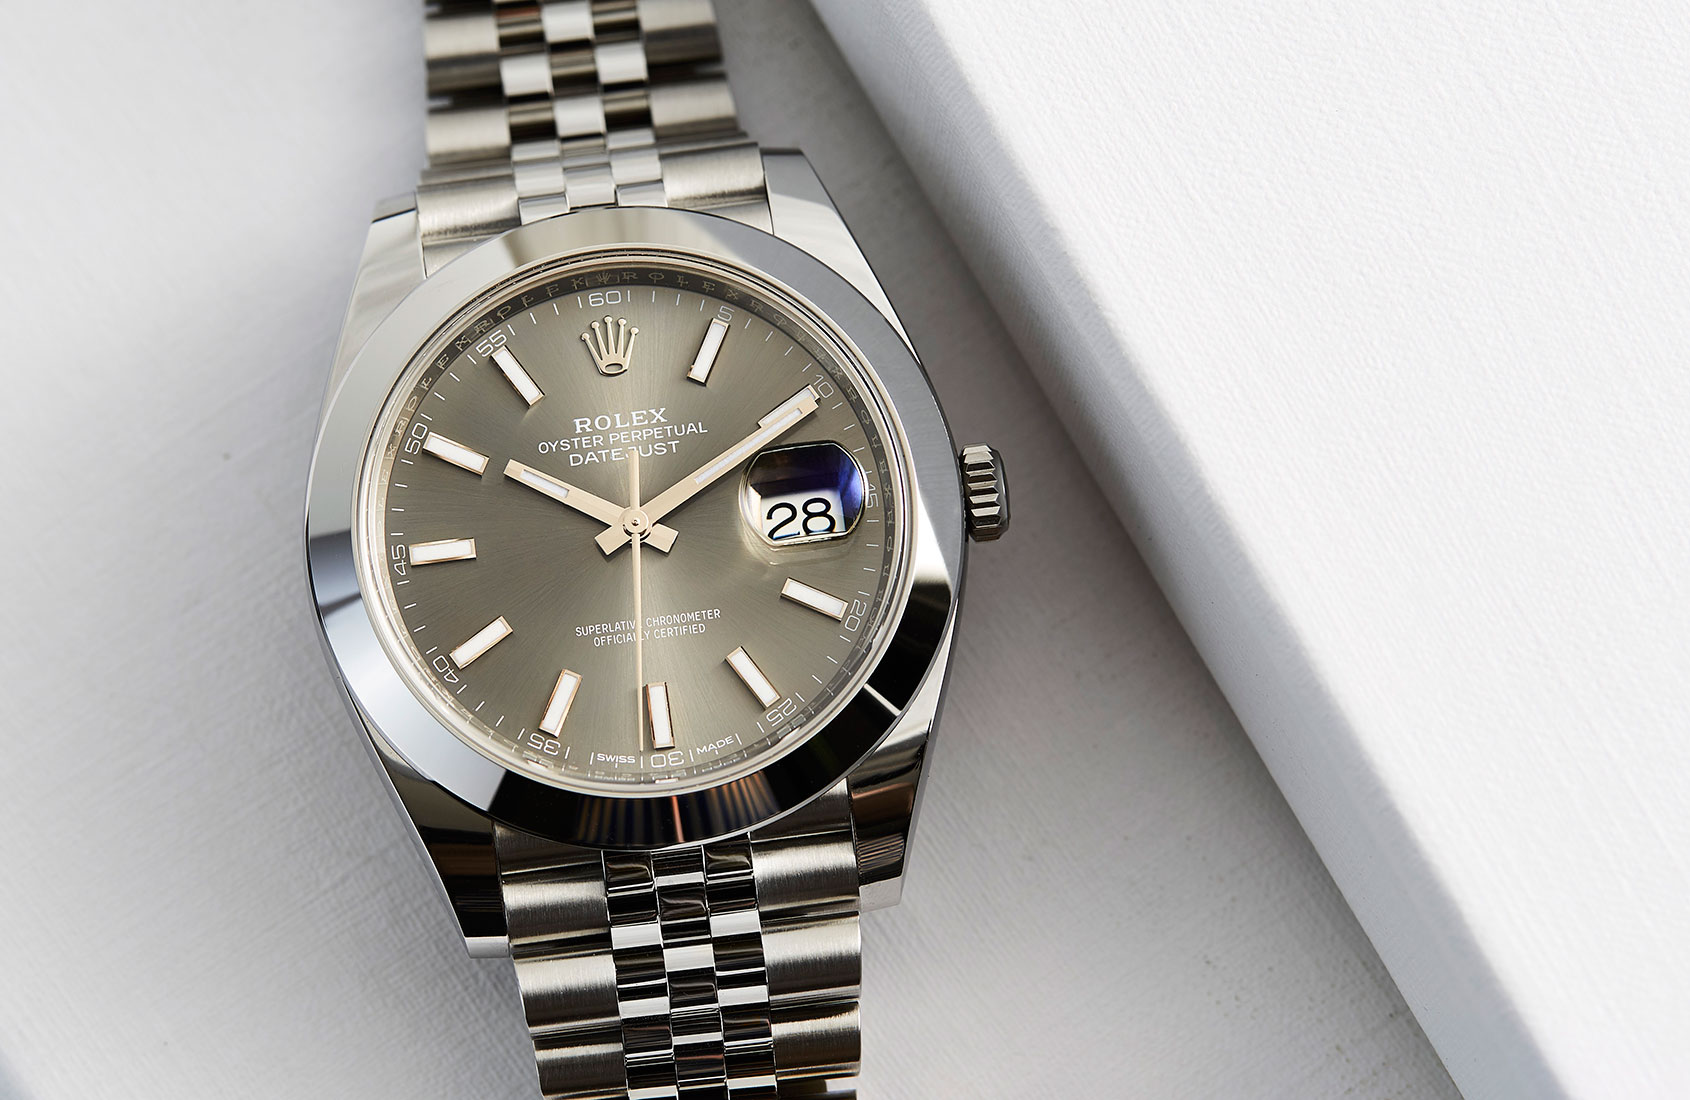 Hands On A Clic Redefined The Rolex Oyster Perpetual Datejust 41 In Steel